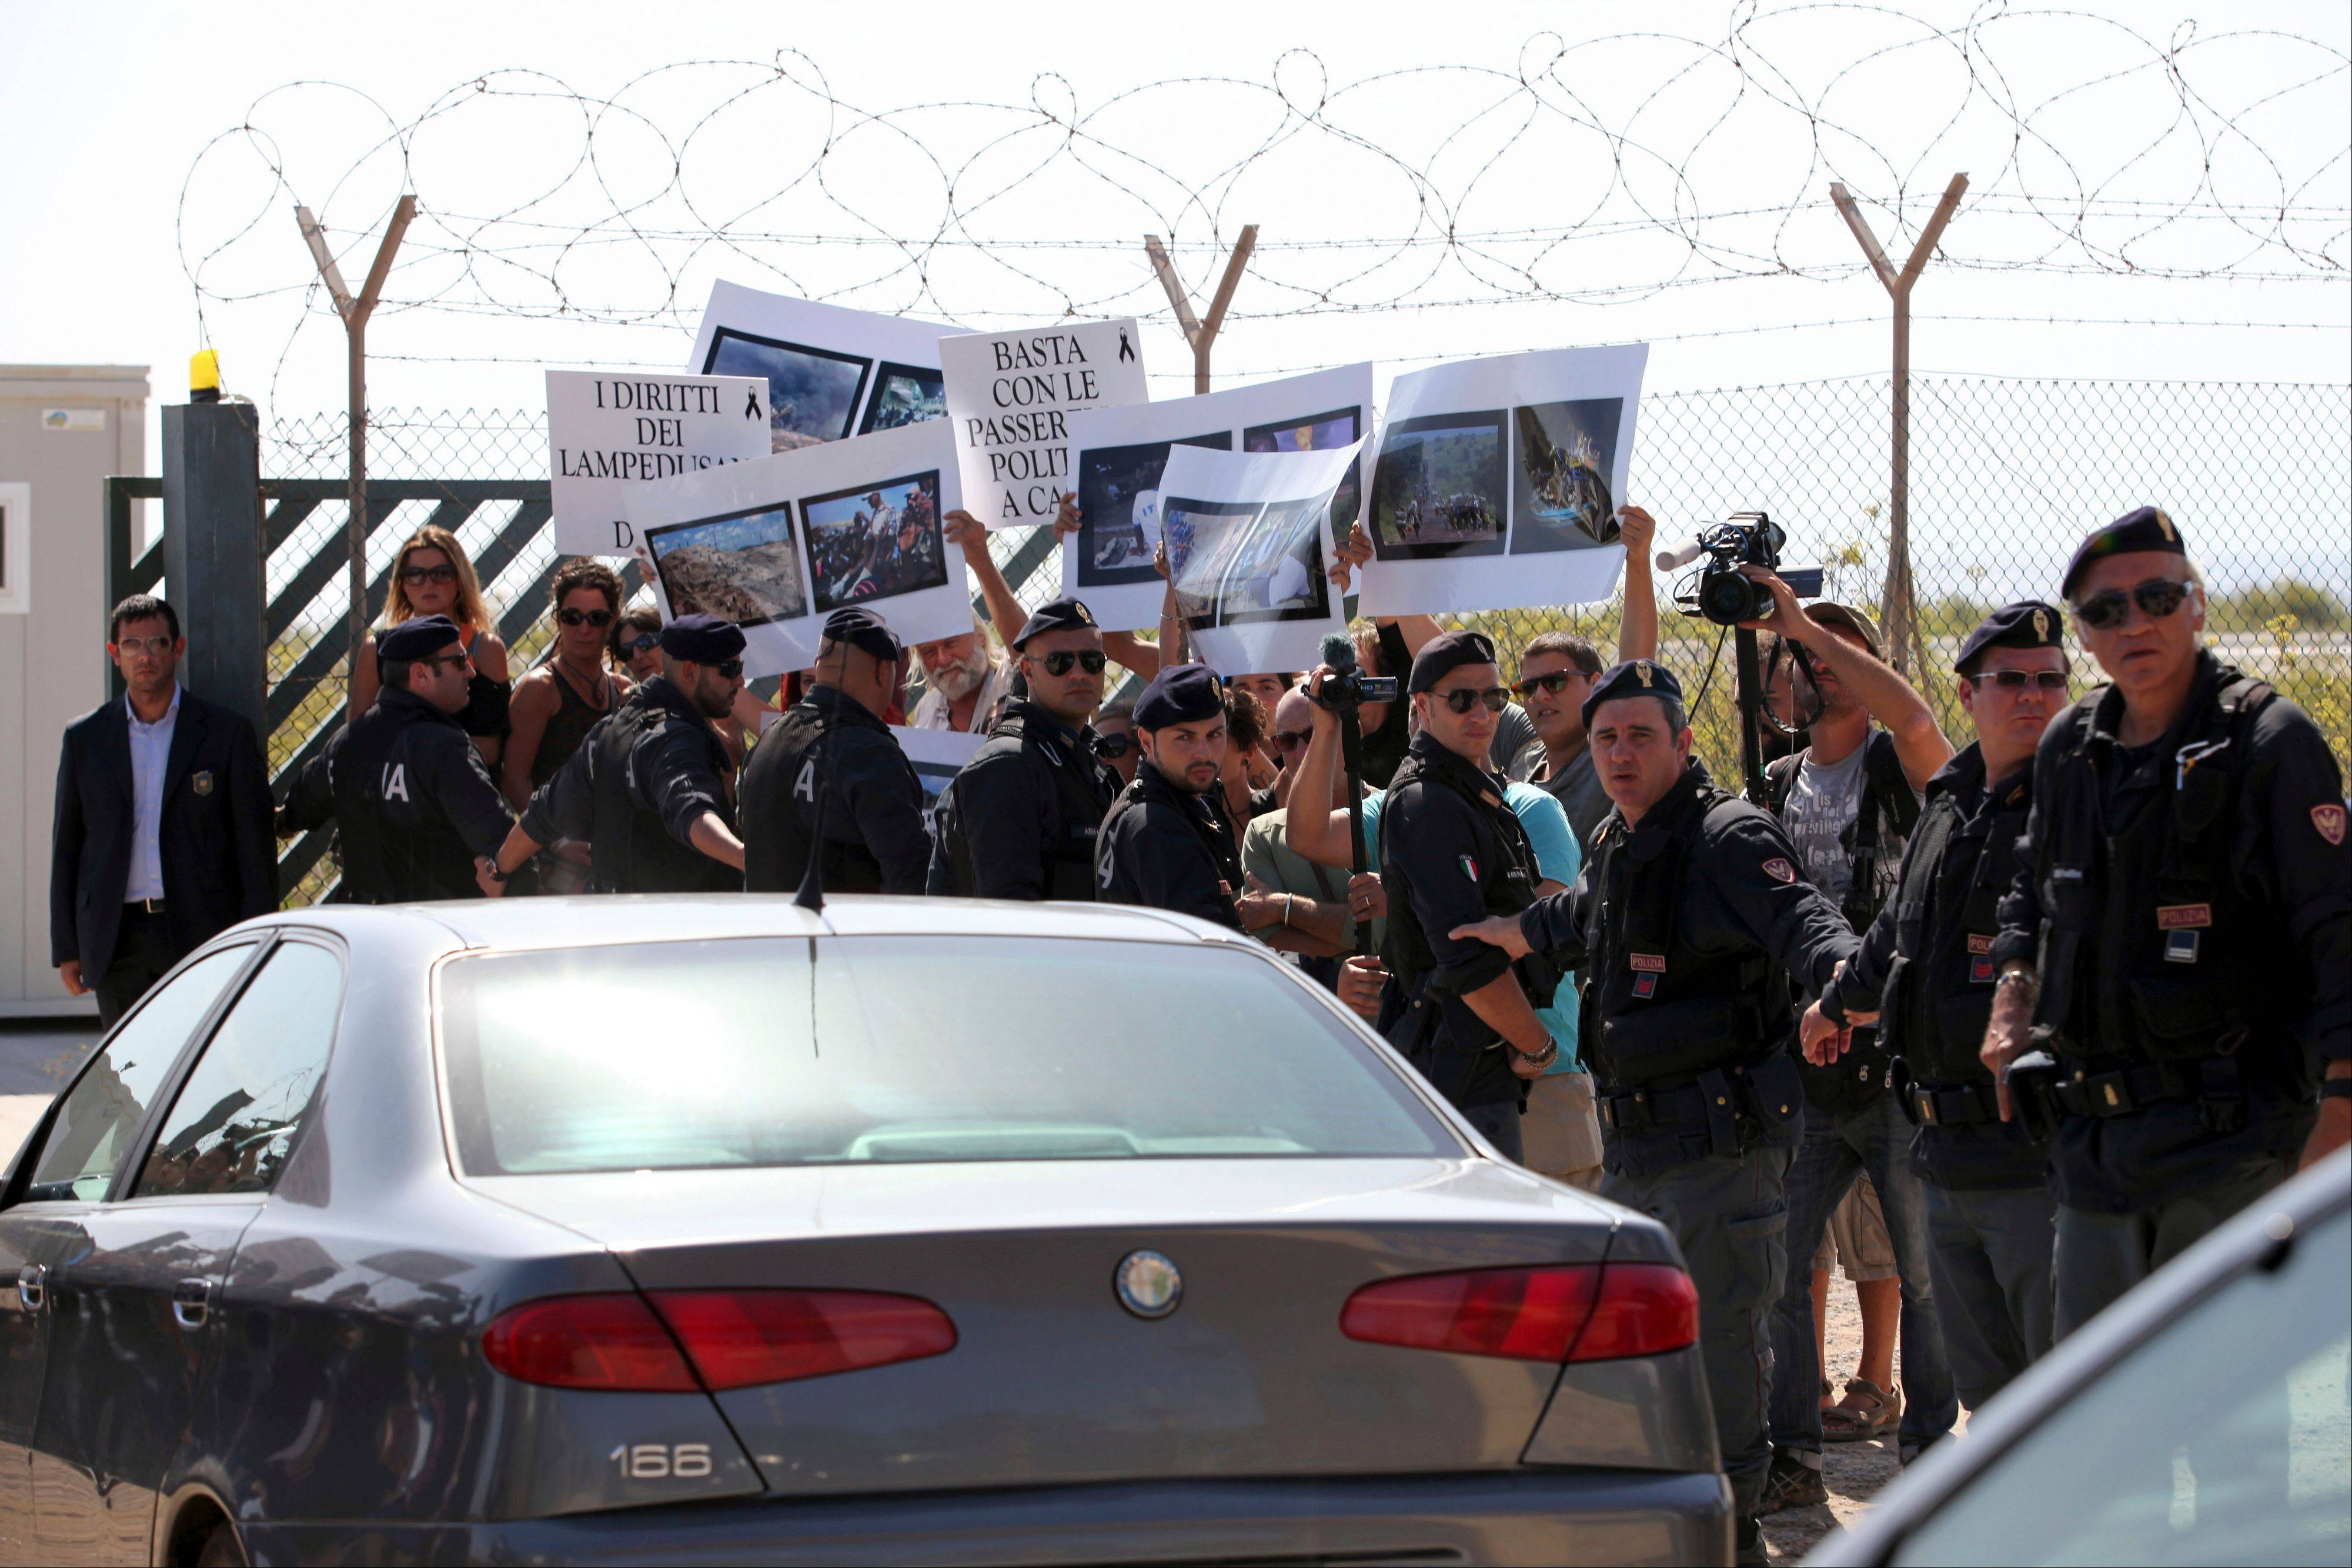 Protesters, held back by Italian riot policemen, show placards Wednesday reading:�Lampedusa�s rights adrift� as a motorcade escorting EU Commission President Jose Manuel Barroso and Italian Premier Enrico Letta leaves Lampedusa�s airport, Italy. Barroso visited Lampedusa with Premier Enrico Letta, who announced that the victims of the disaster would receive a state funeral.